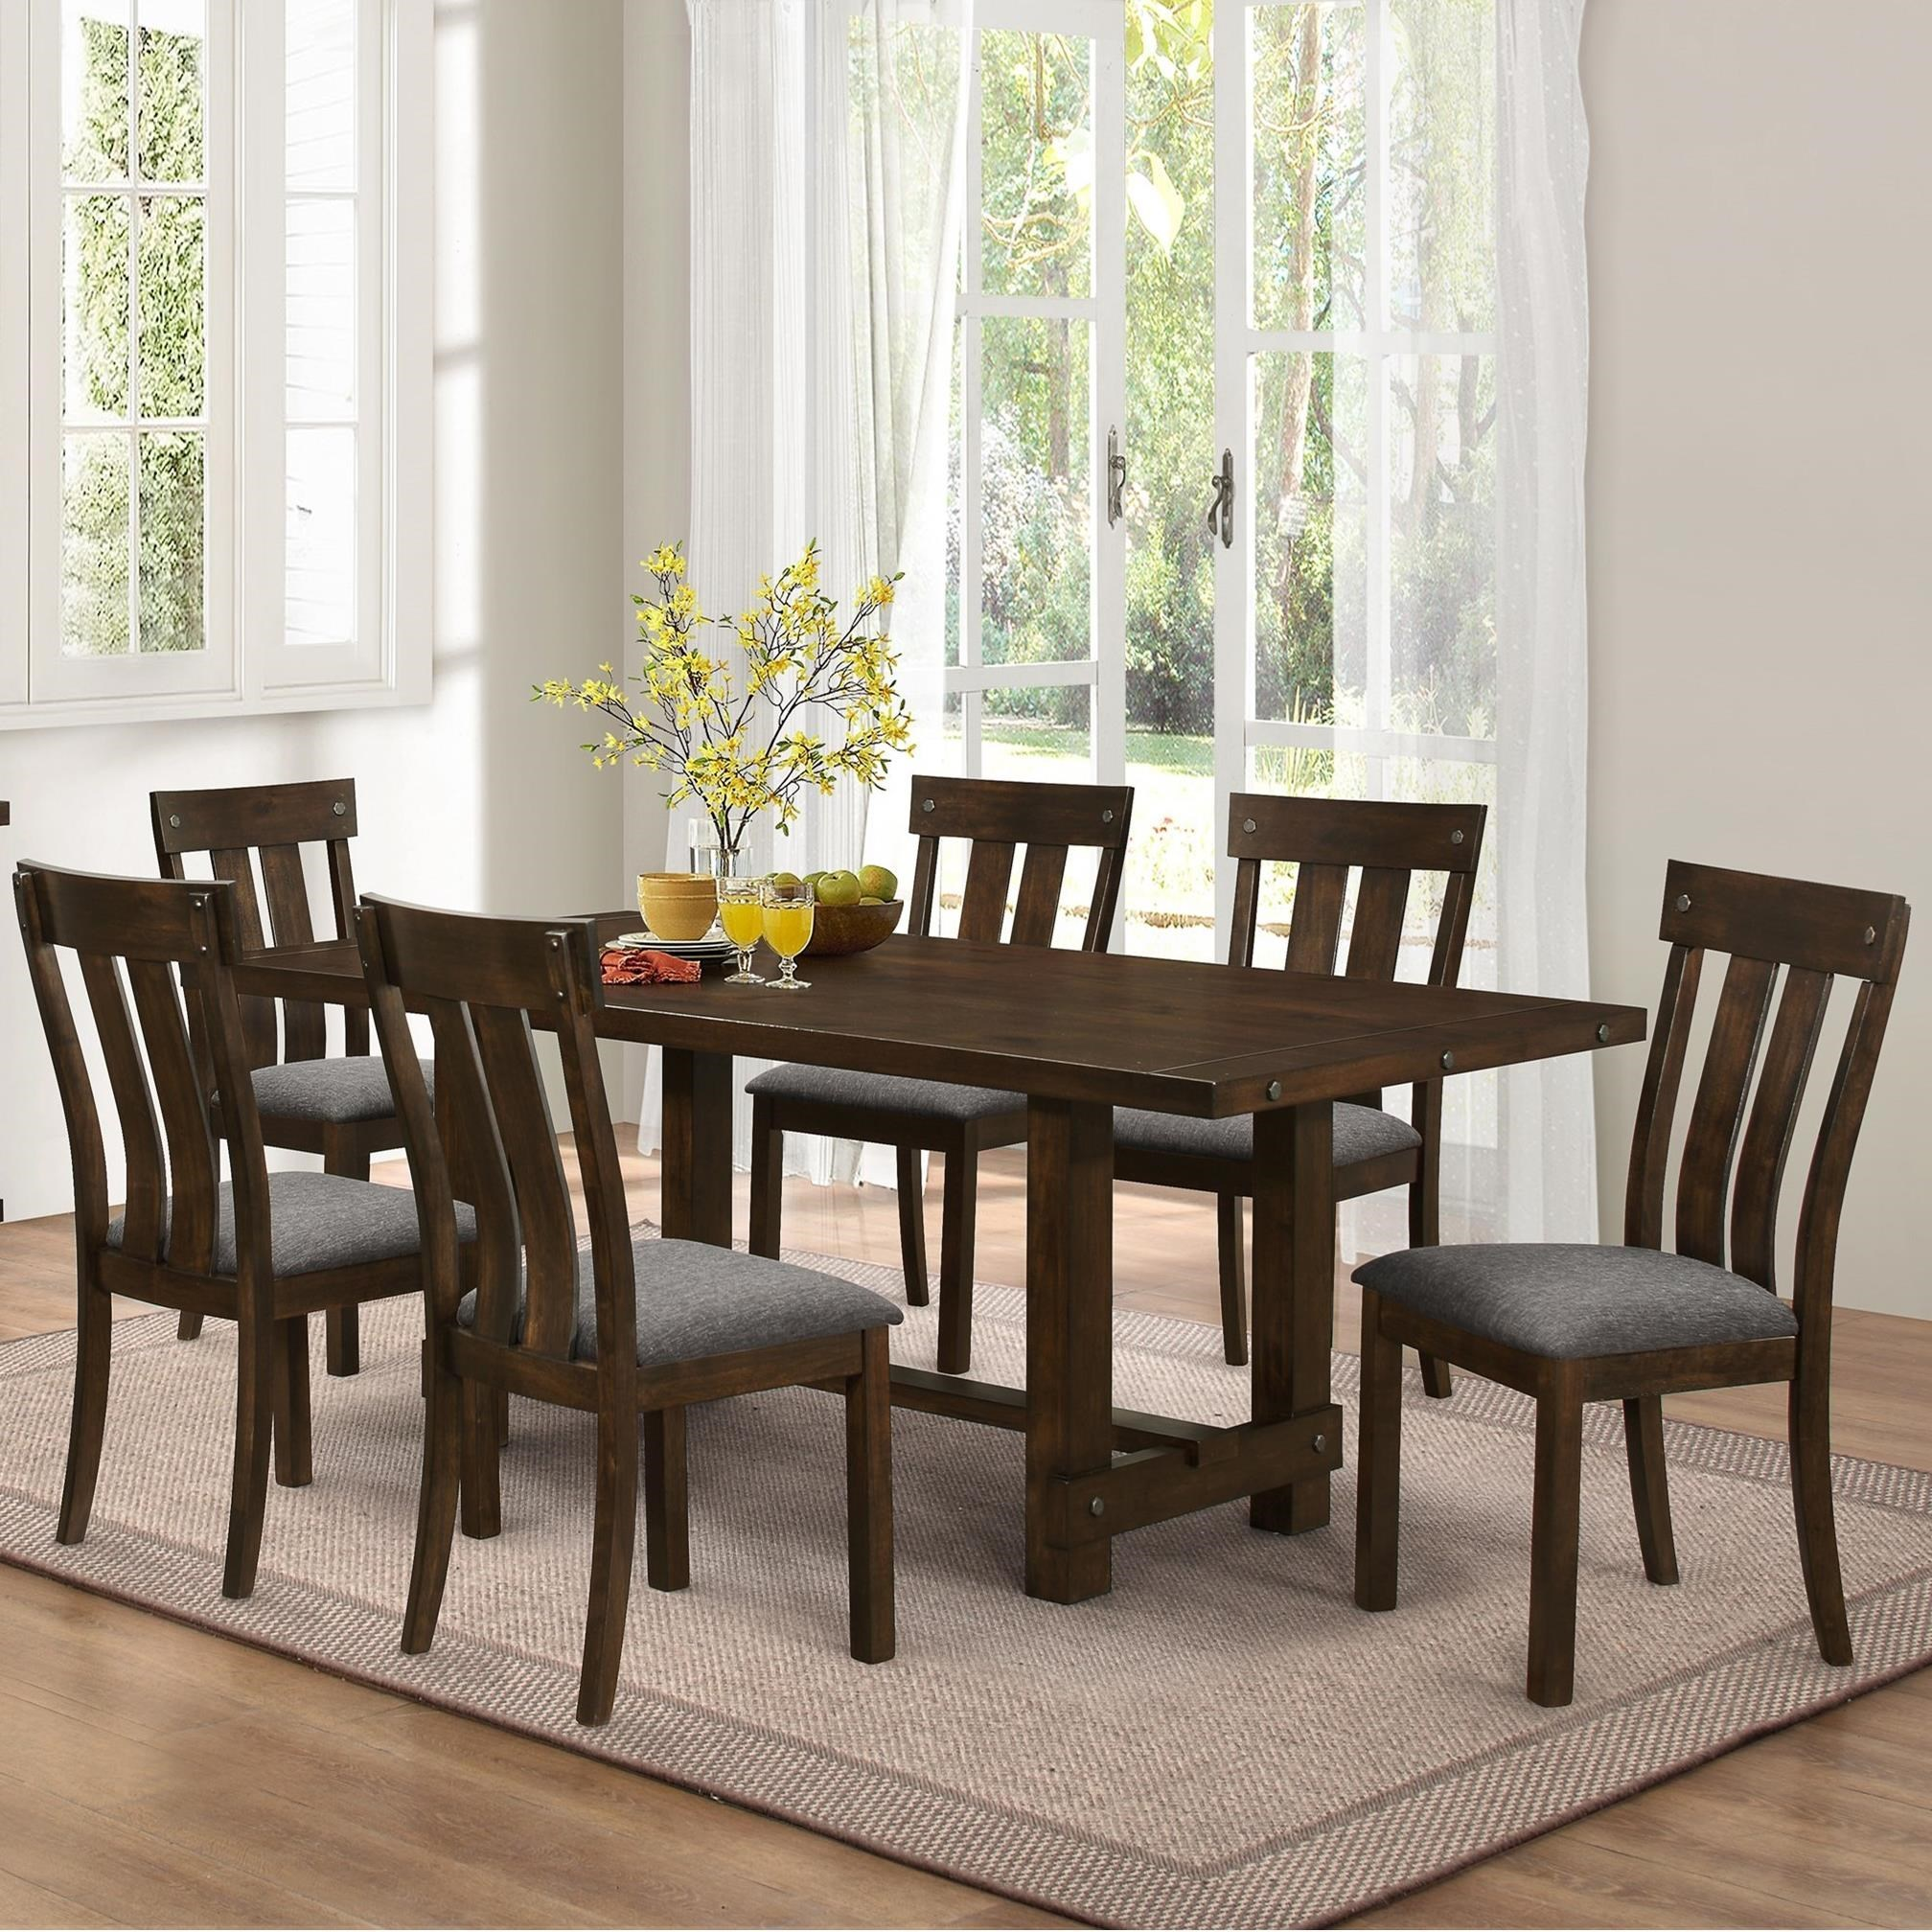 10 chair dining table set orthopedic high seat for the elderly new classic frisco 7 piece trestle with slat back side frisco7